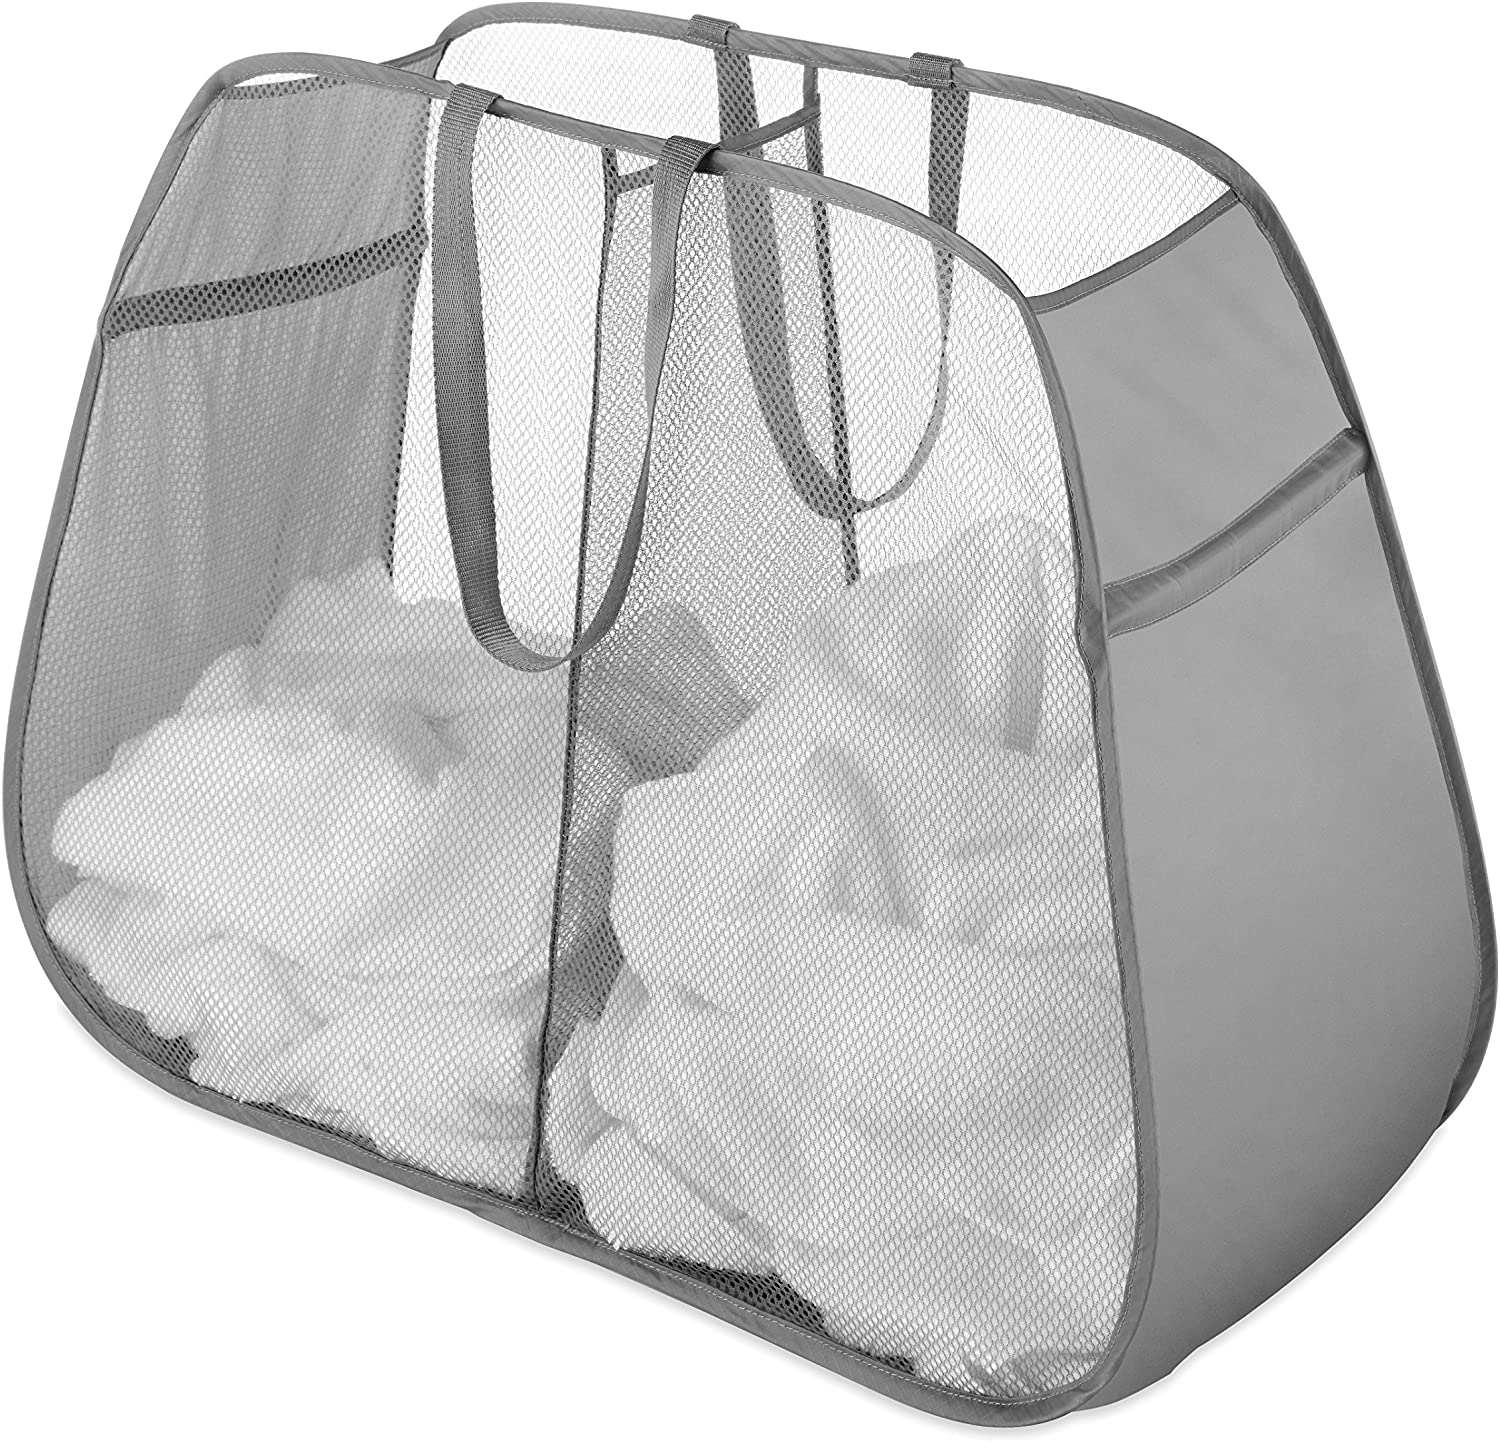 Whitmor Pop and Fold Double Hamper, Paloma Gray